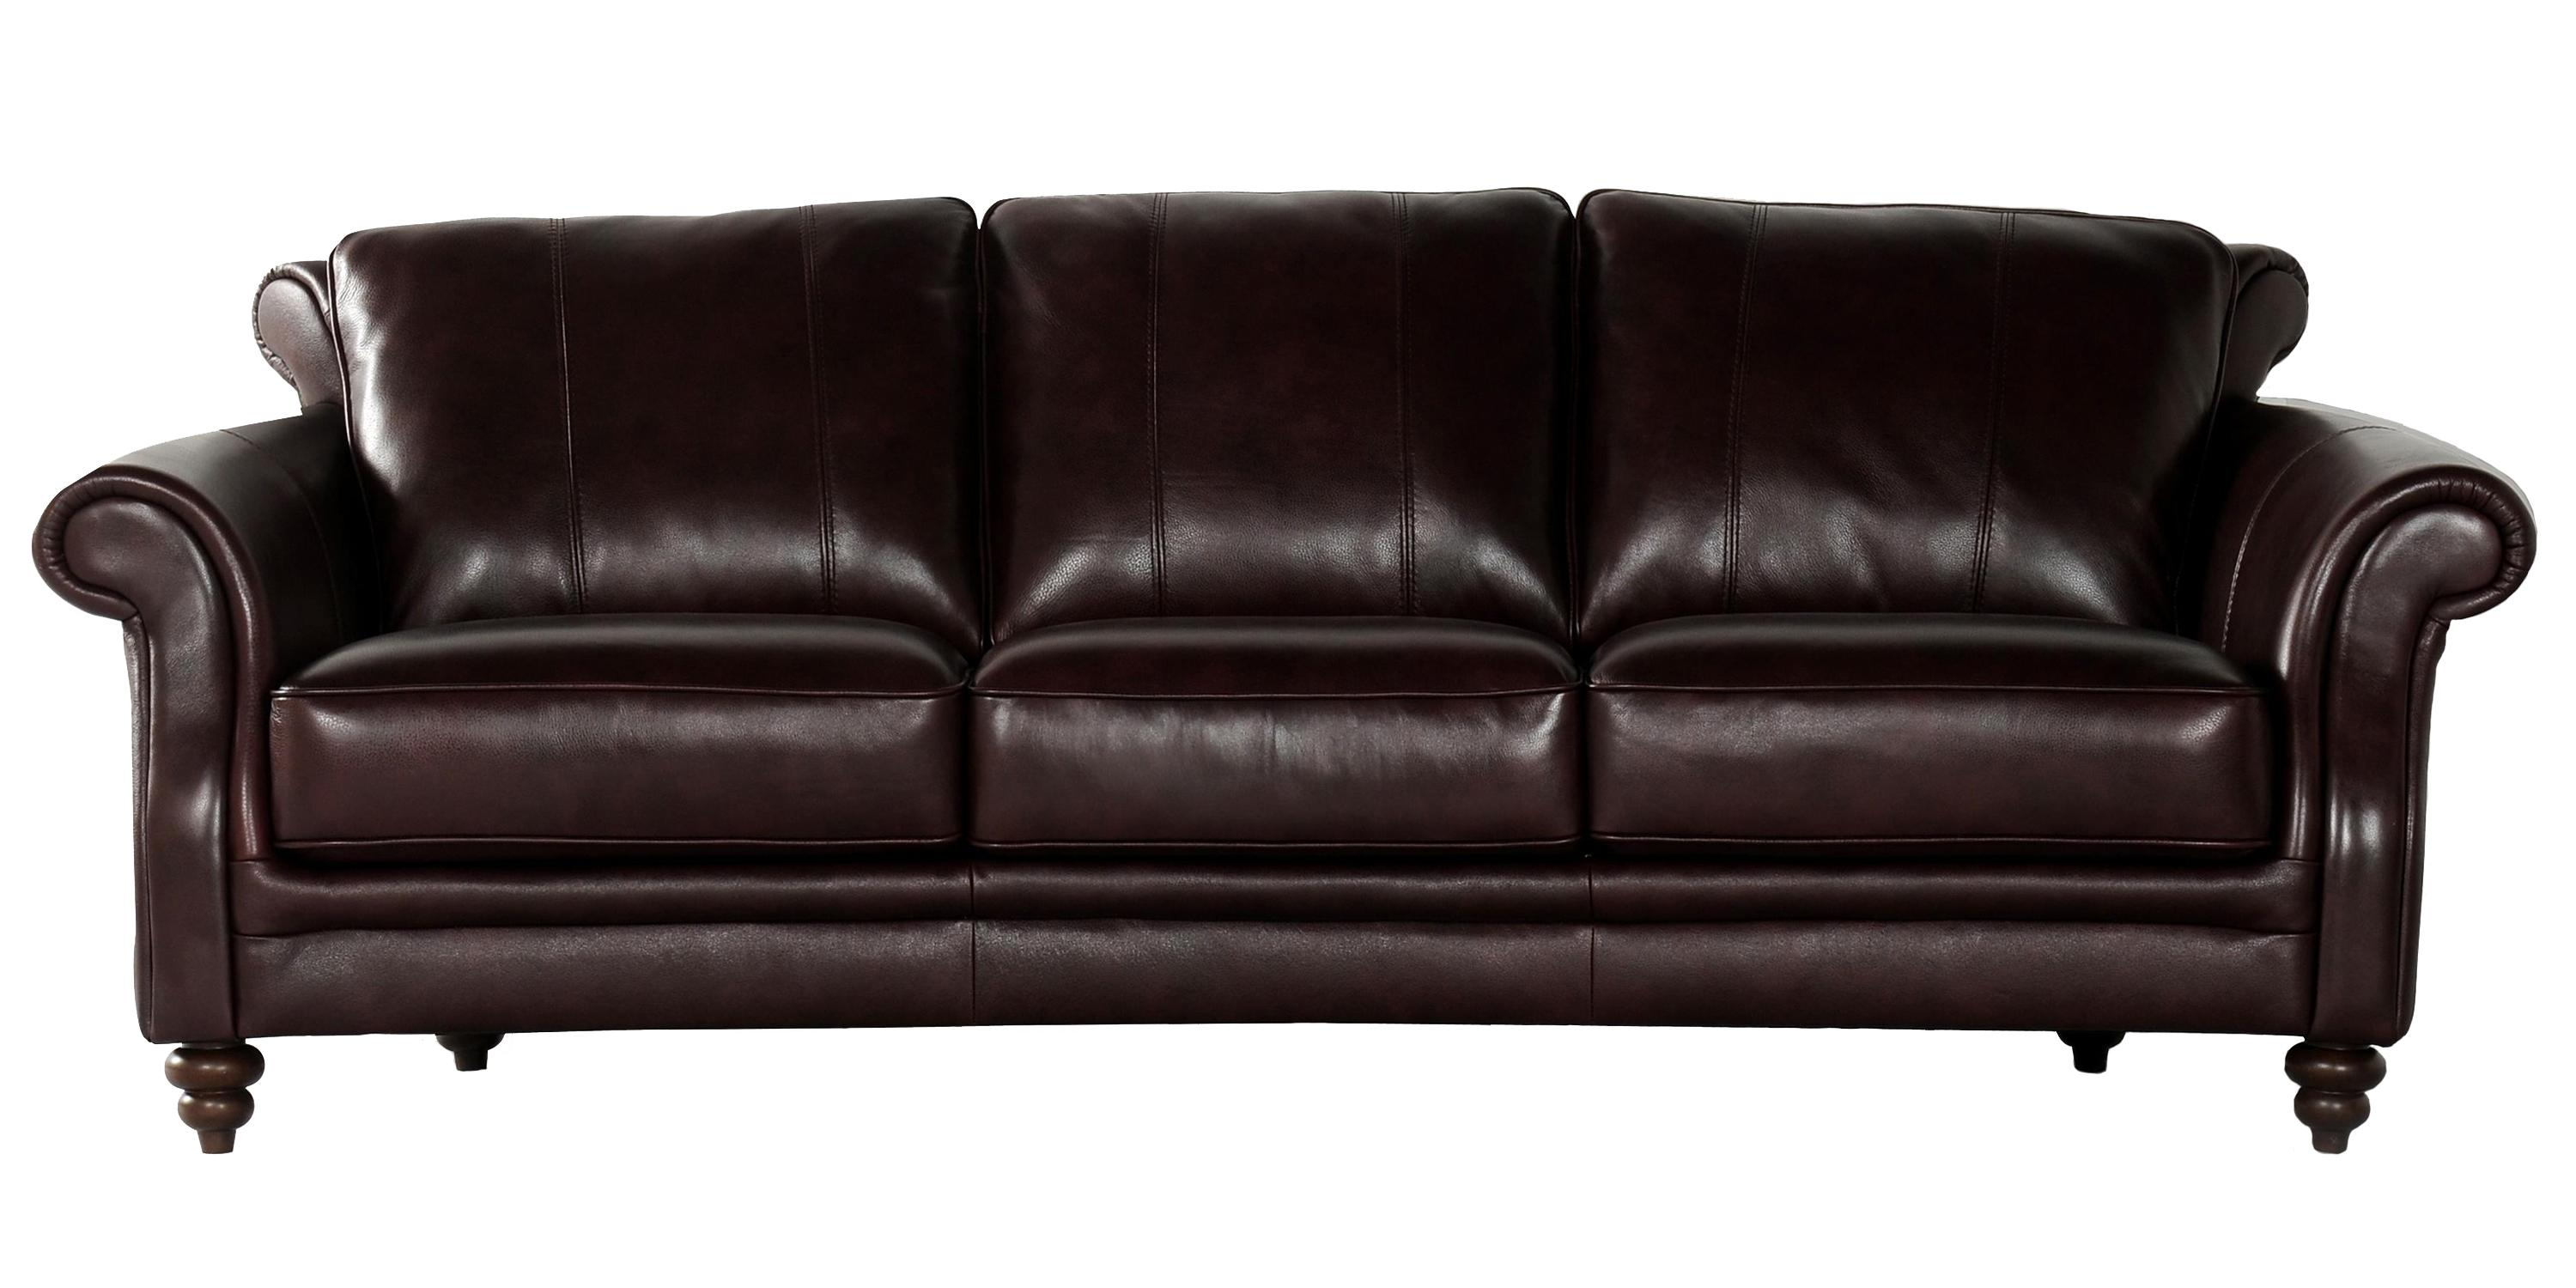 3486A Sofa by Violino at Furniture Superstore - Rochester, MN